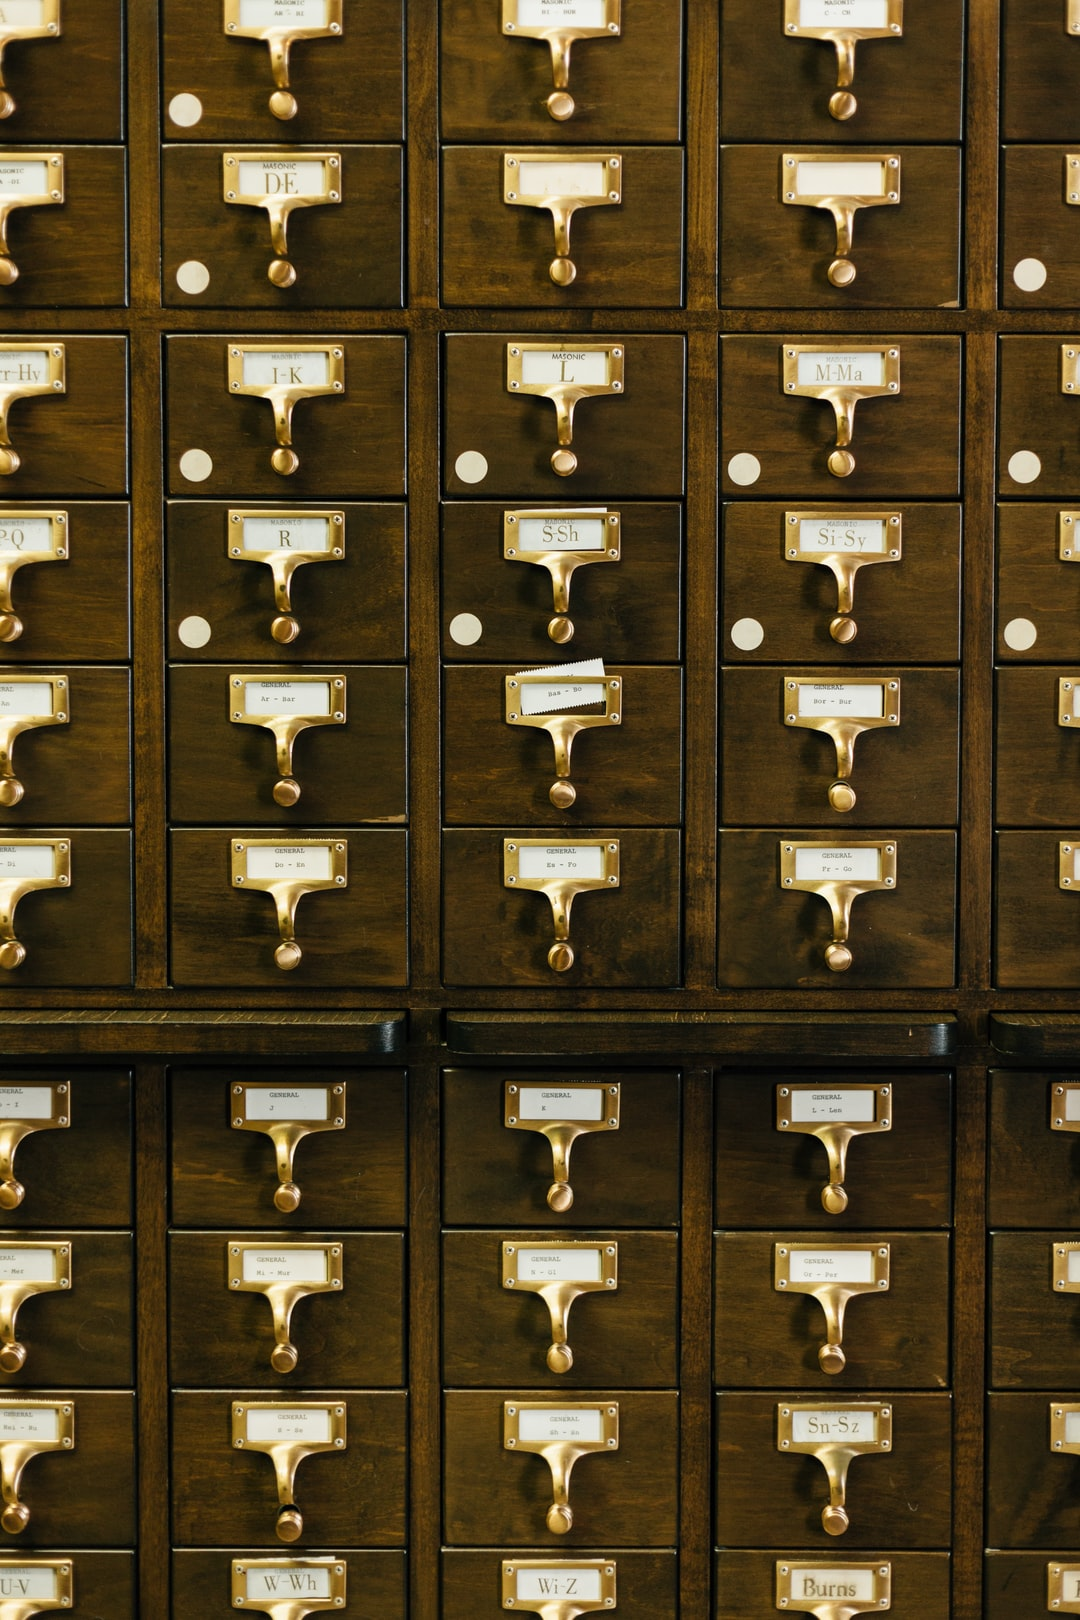 The Freemason building in Washington, D.C., houses a large library — open to the public. This was a card catalog I saw inside their collections.